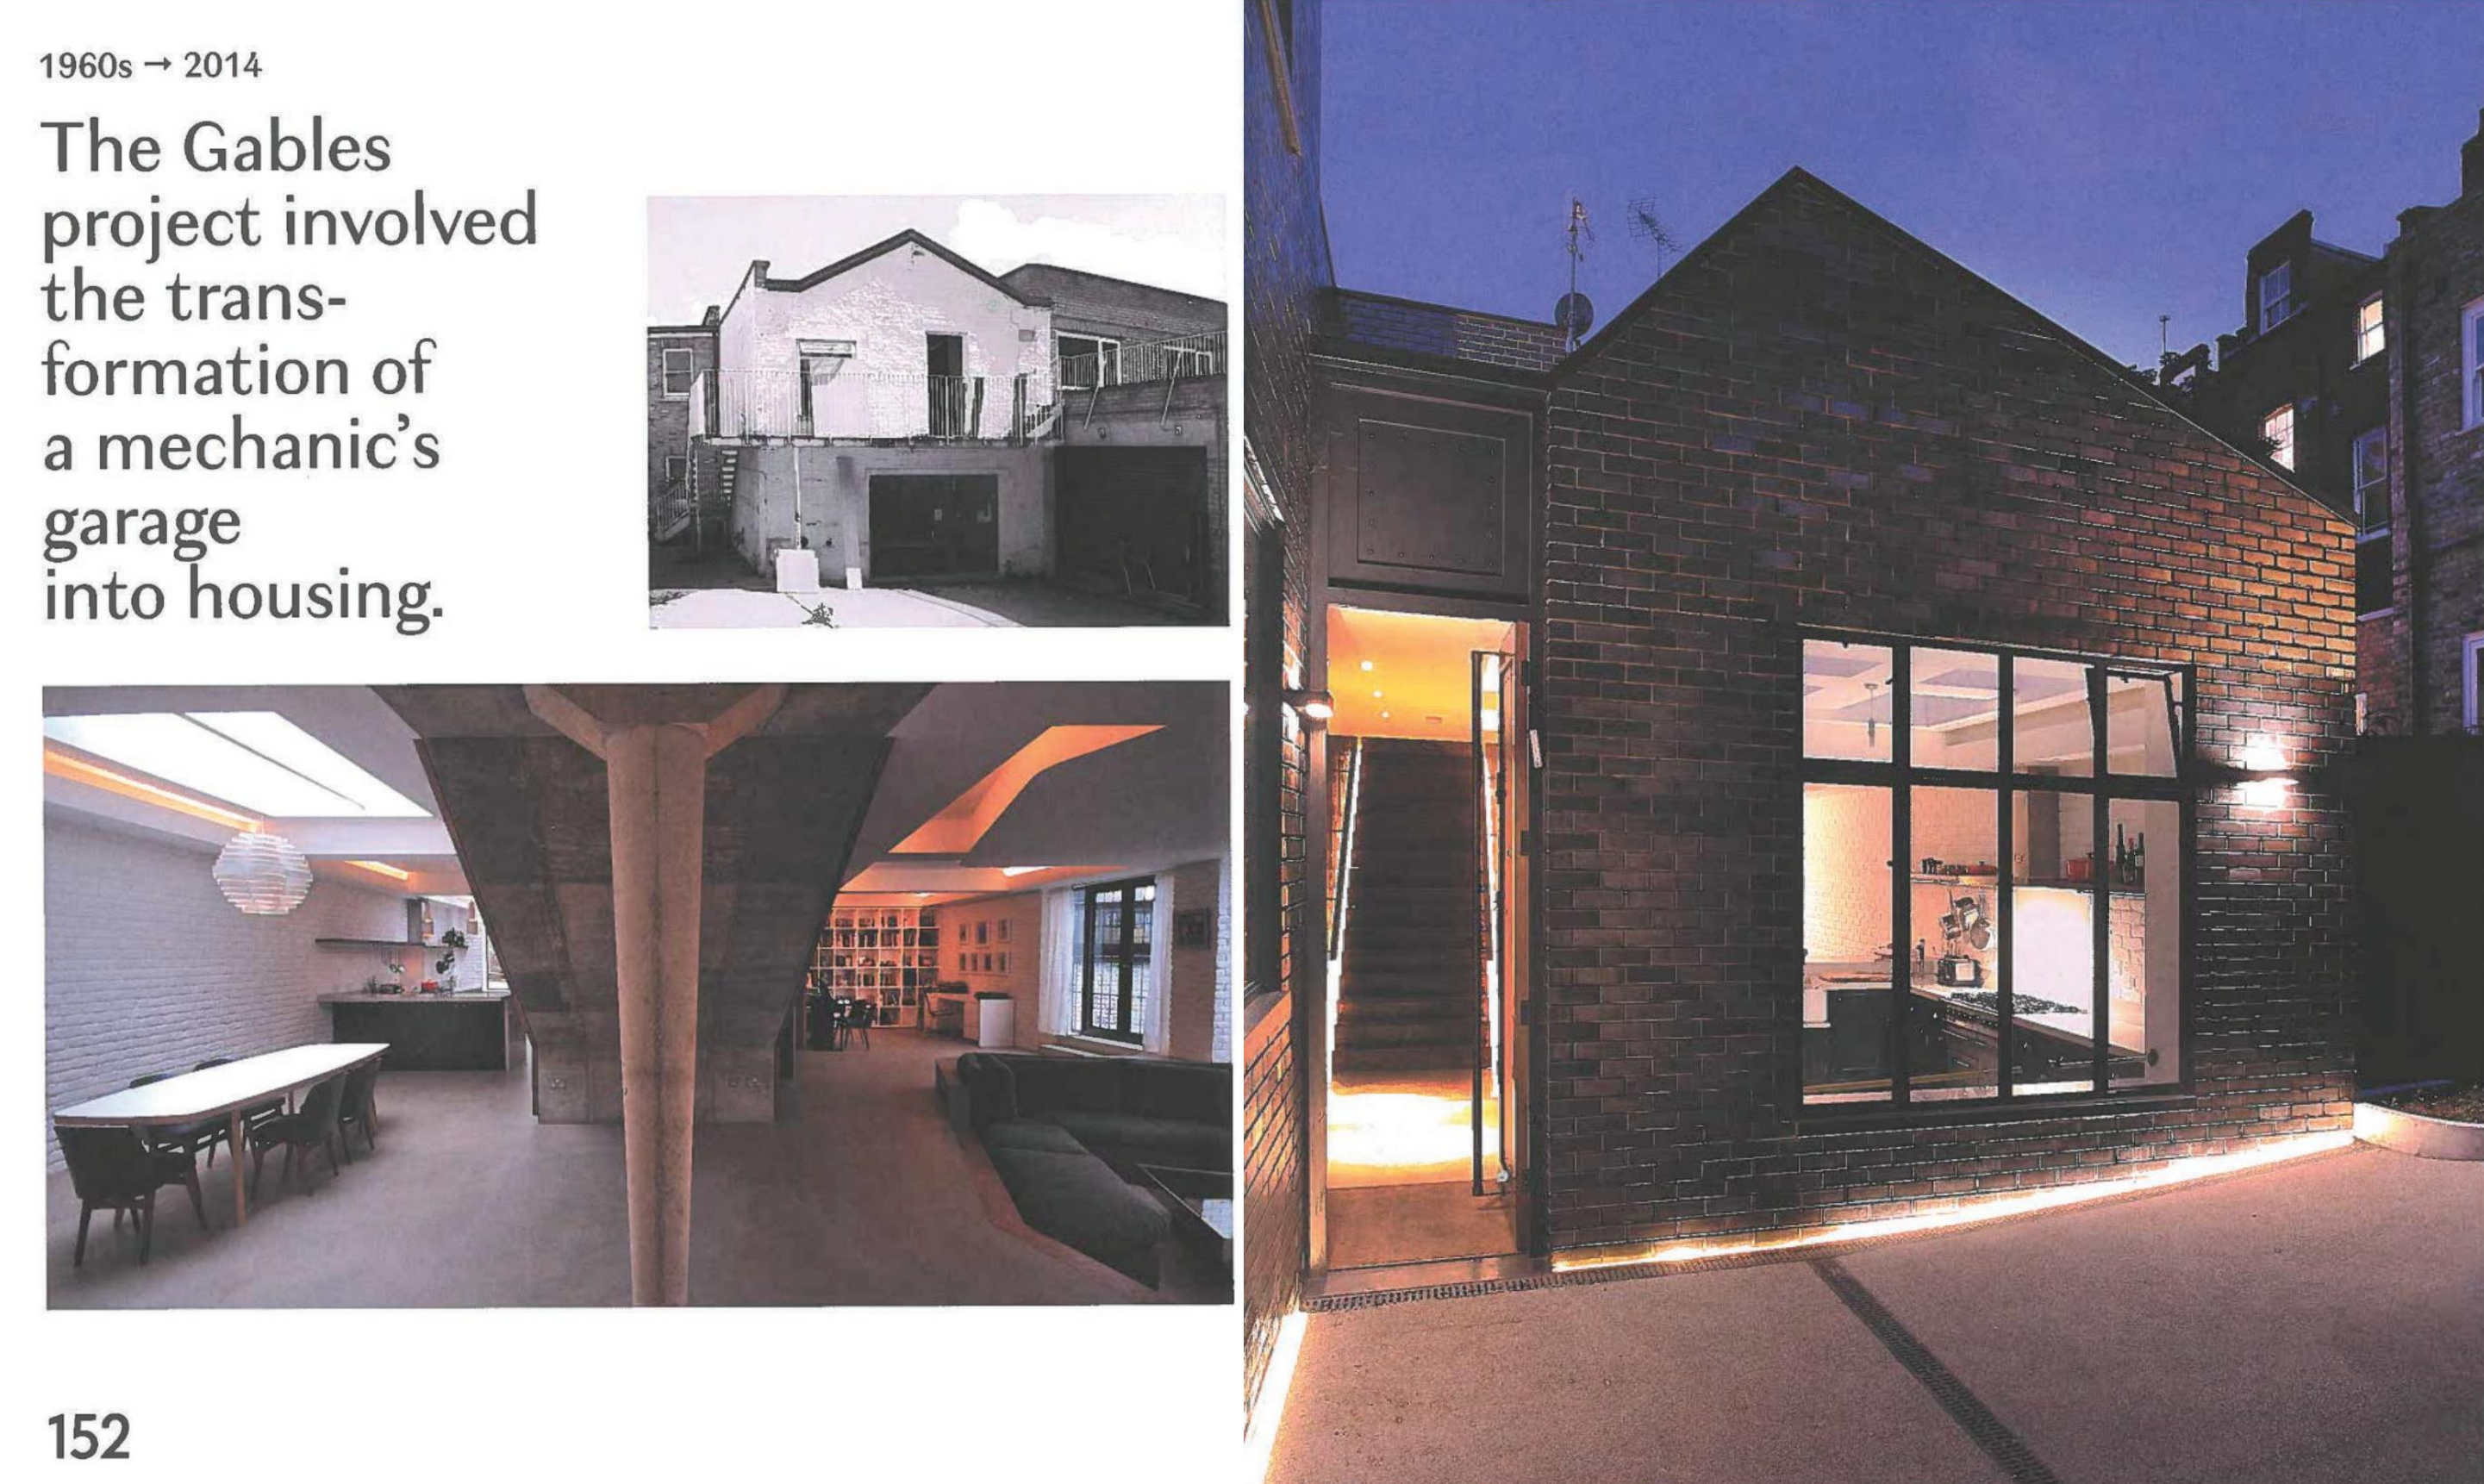 The Gables, publication: When a factory becomes a home